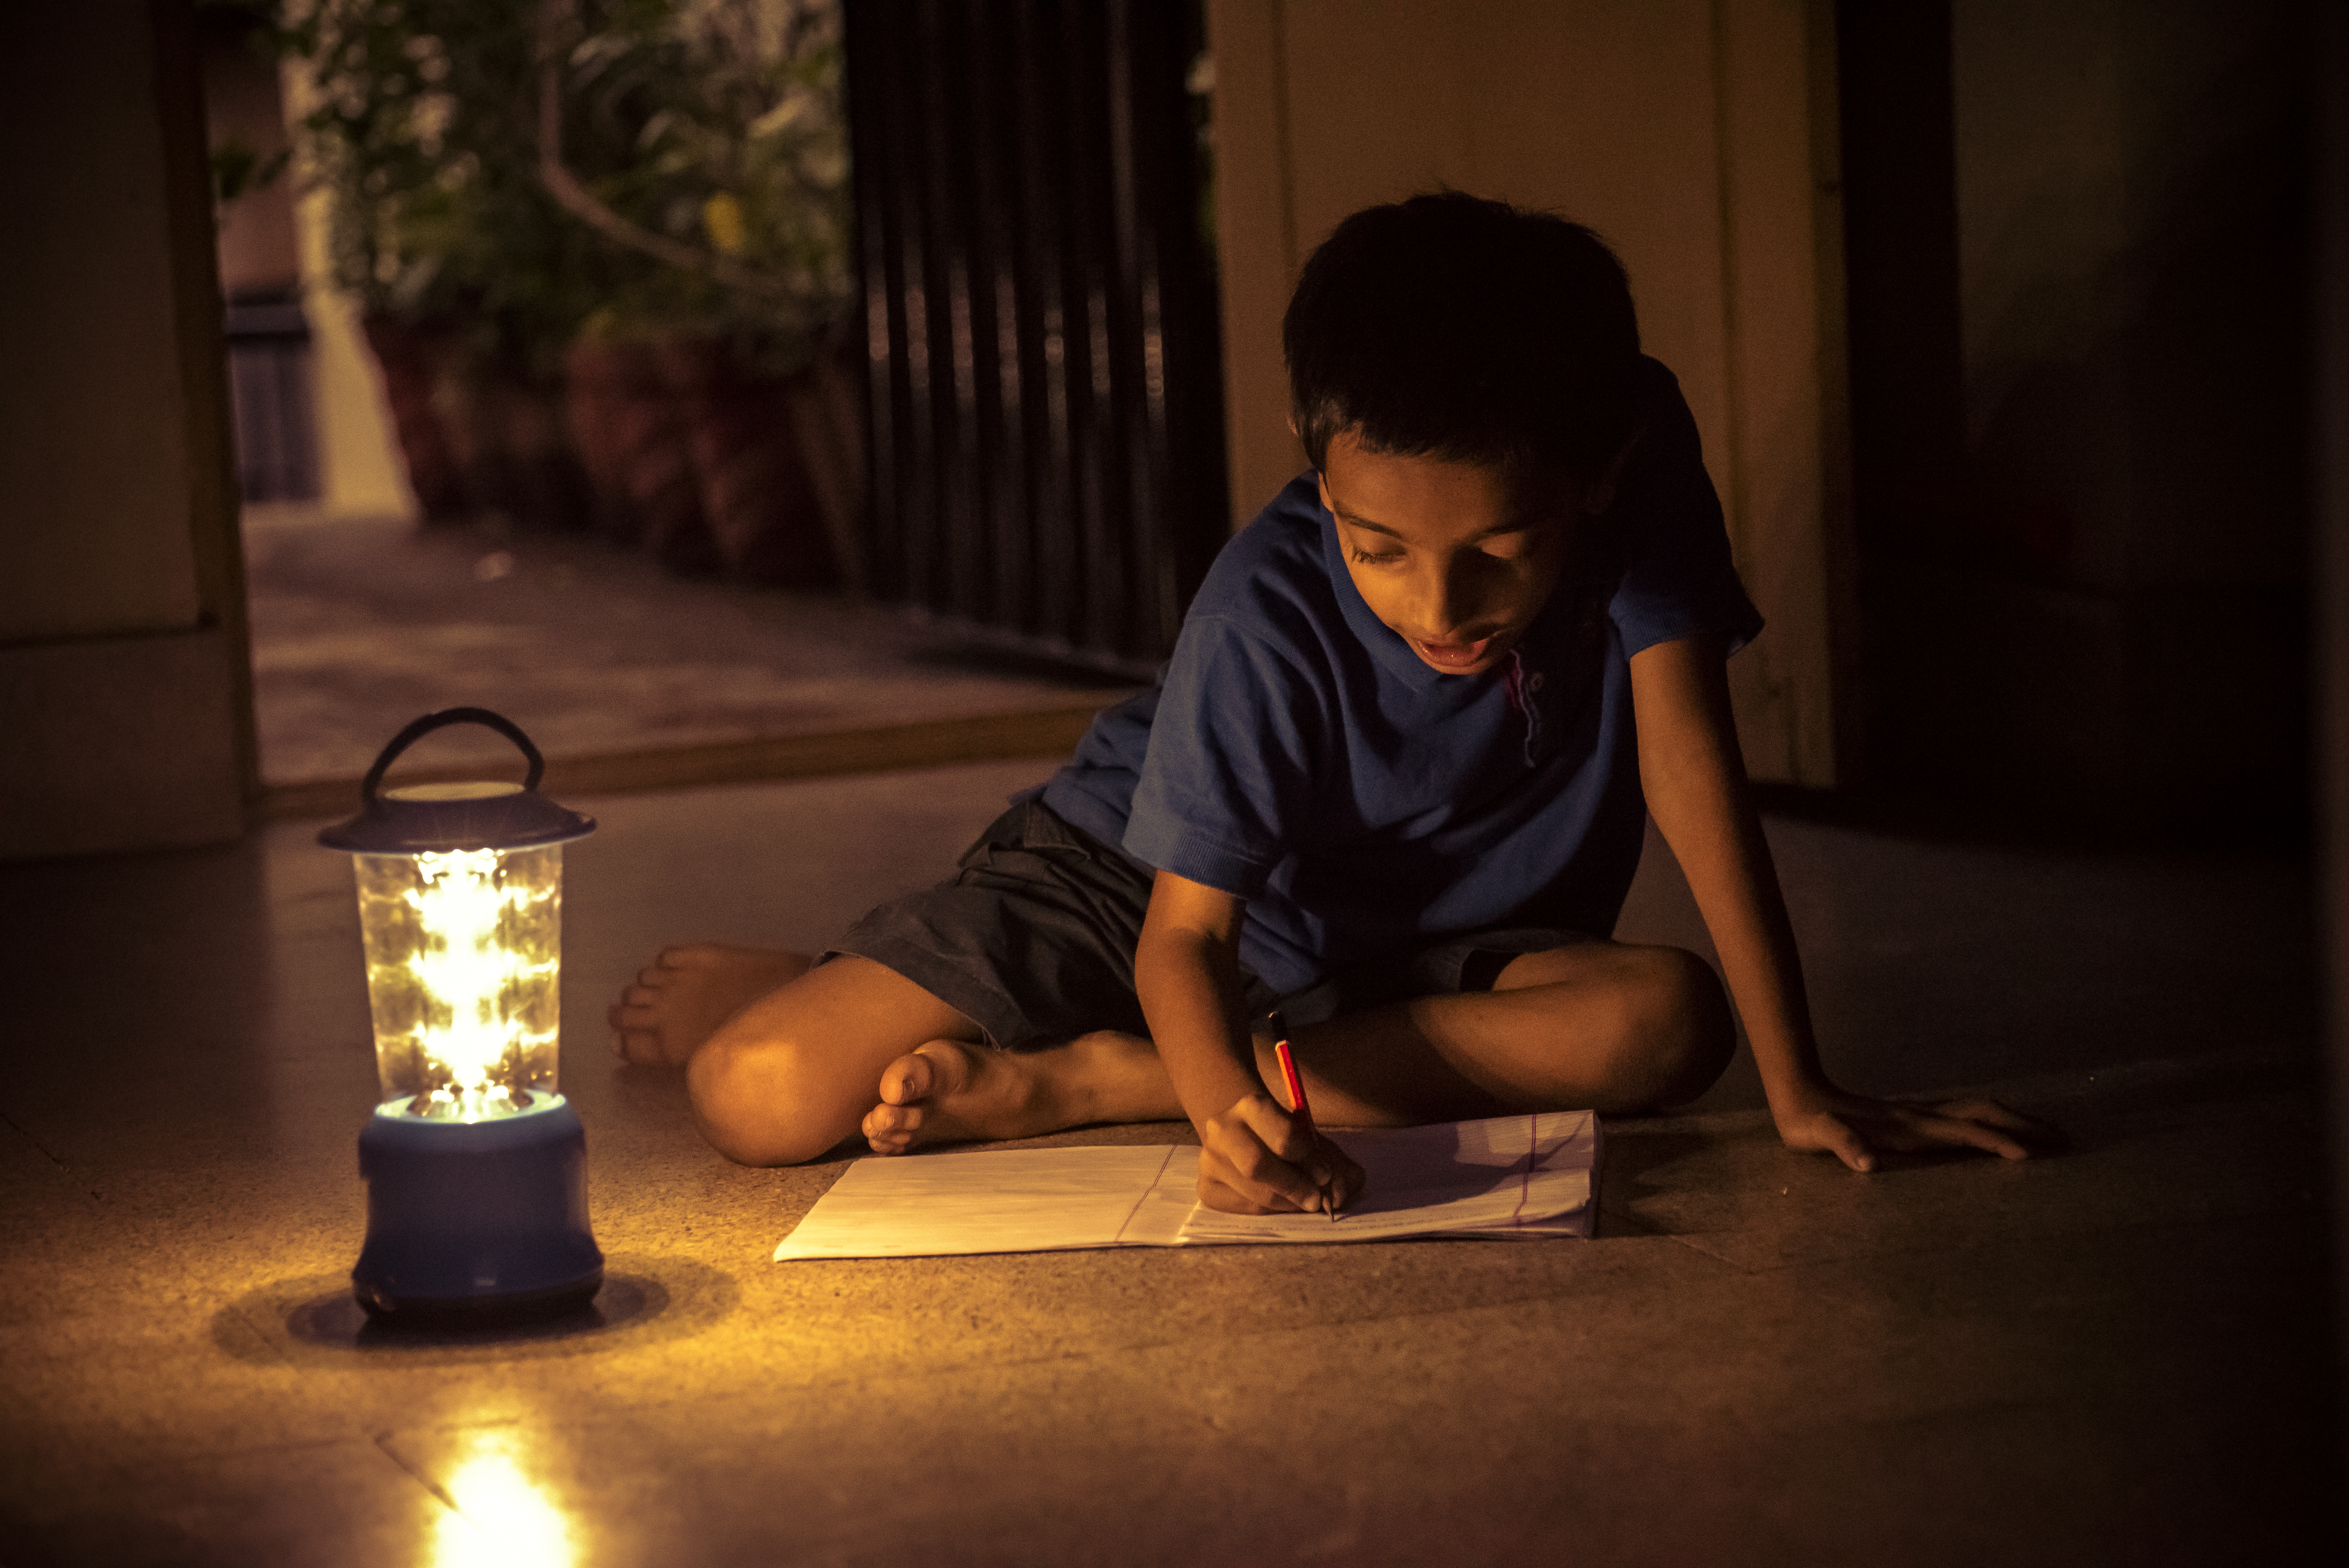 7 years Indian Boy studying under lamp